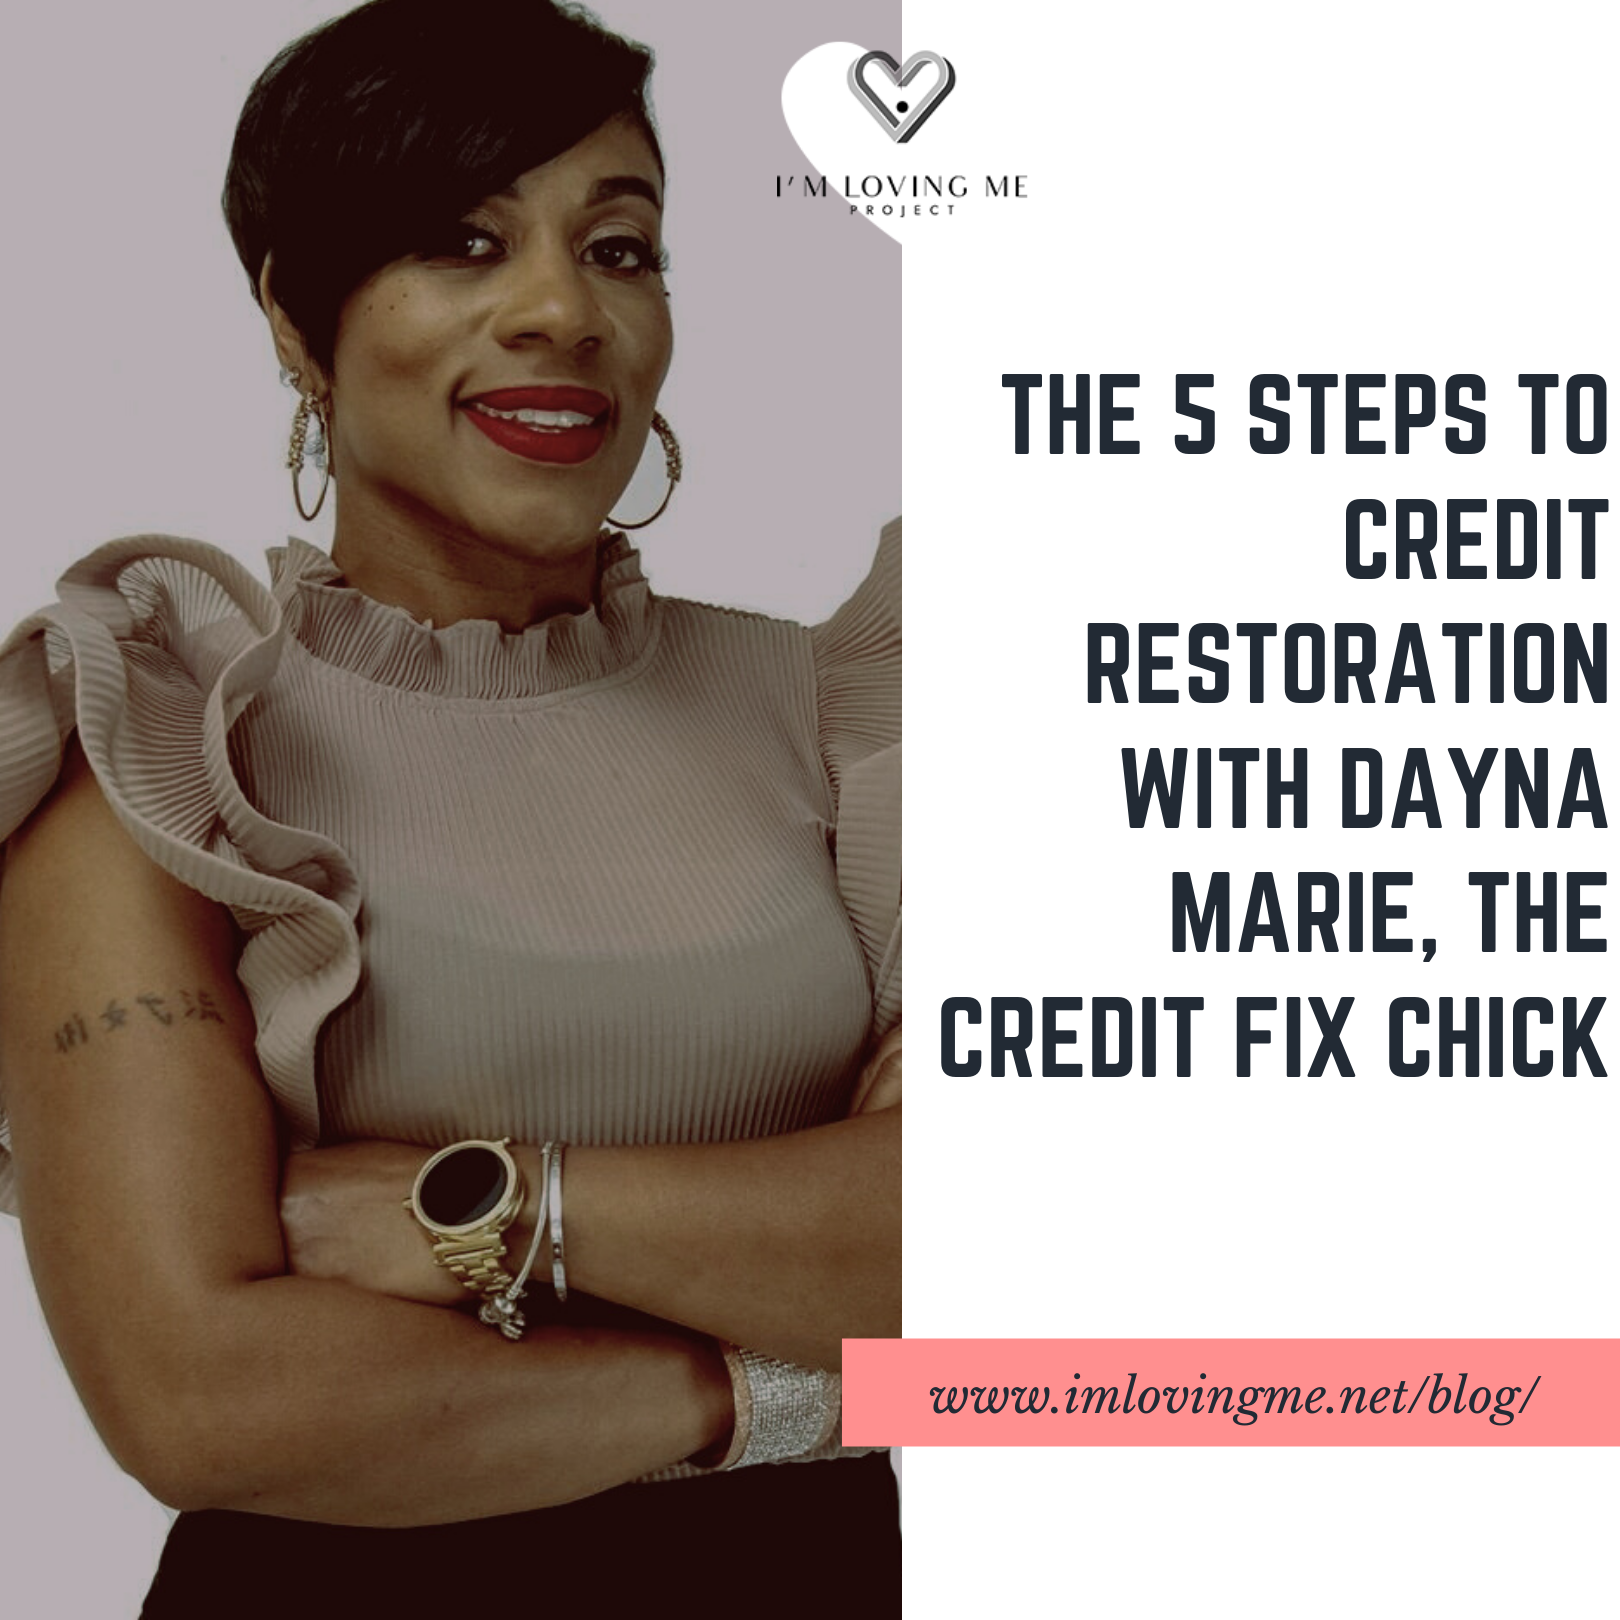 Five Steps to Credit Restoration with The Credit Fix Chick, Dayna Marie